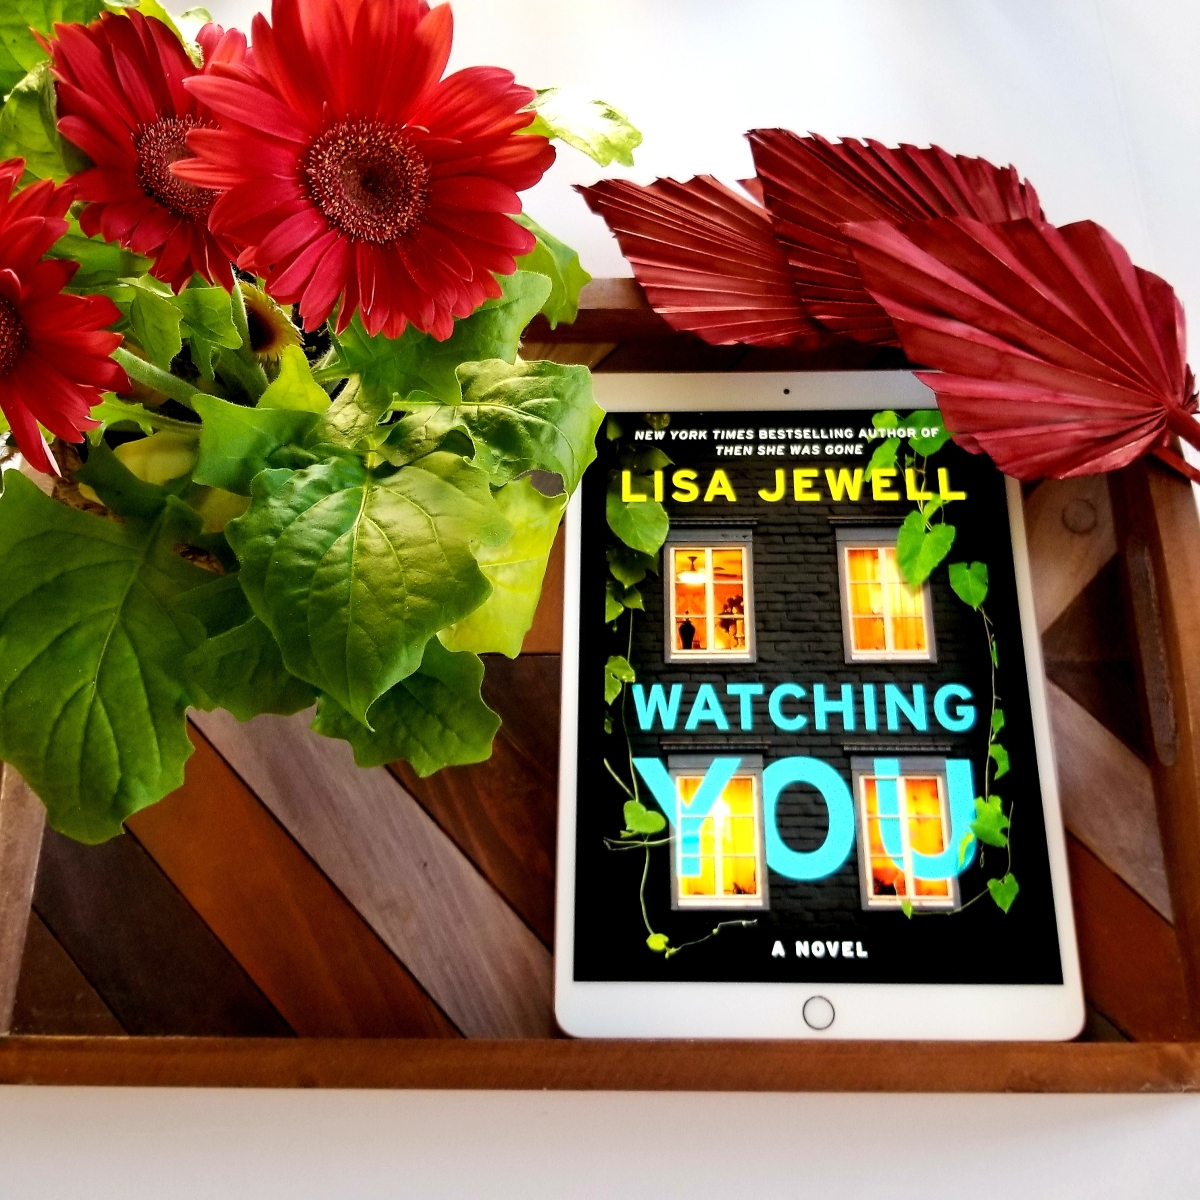 Watching You by Lisa Jewell #bookreview #tarheelreader #thrwatchingyou @lisajewelluk @atriabooks #watchingyou #bookbestieswatchingyou #watchingyoubook